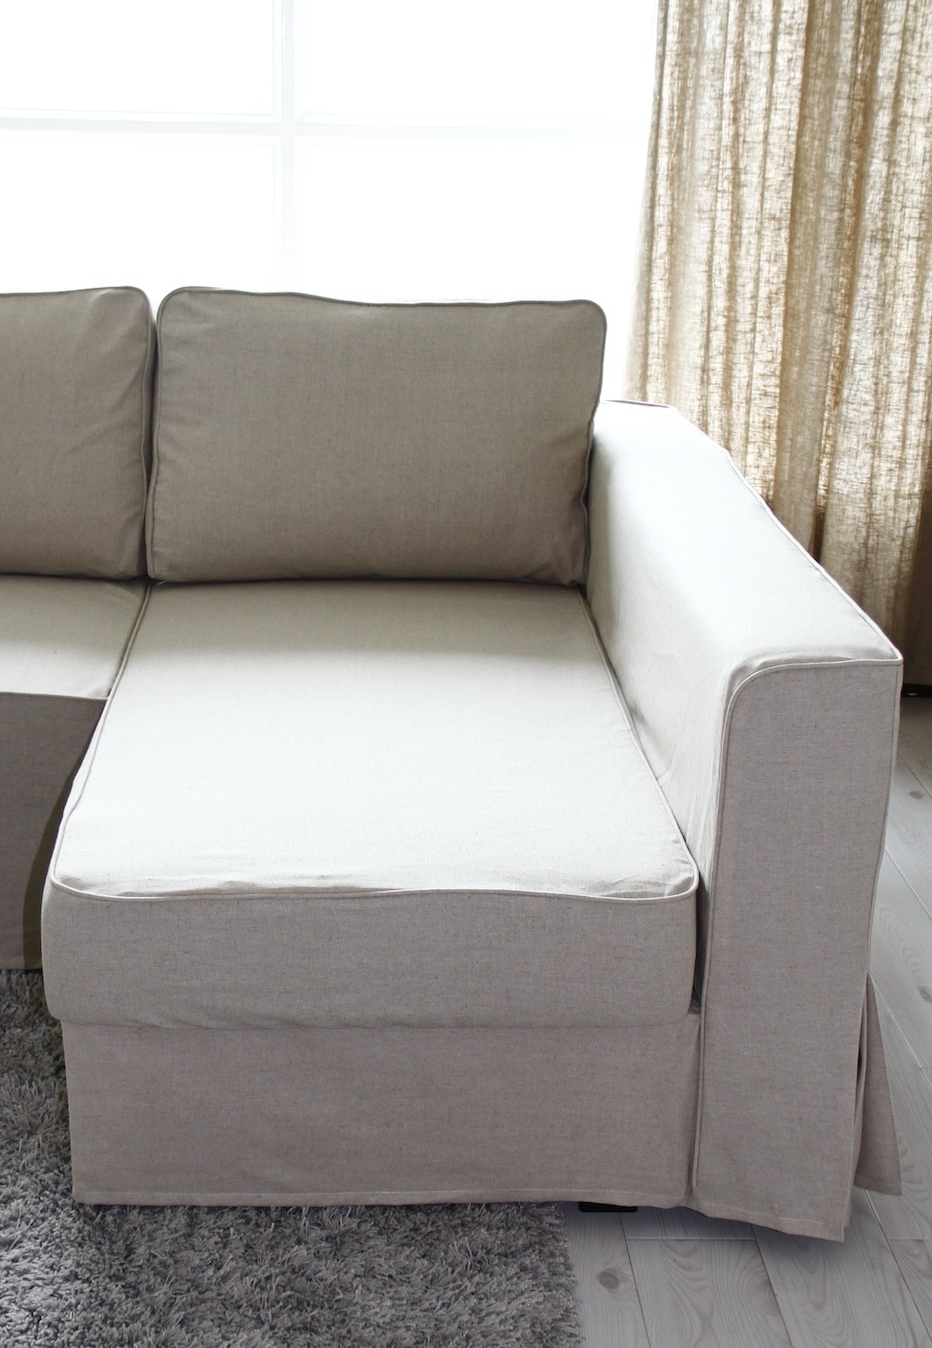 Fit Linen Manstad Sofa Slipcovers Now Available Intended For Famous Manstad Sofas (View 5 of 20)